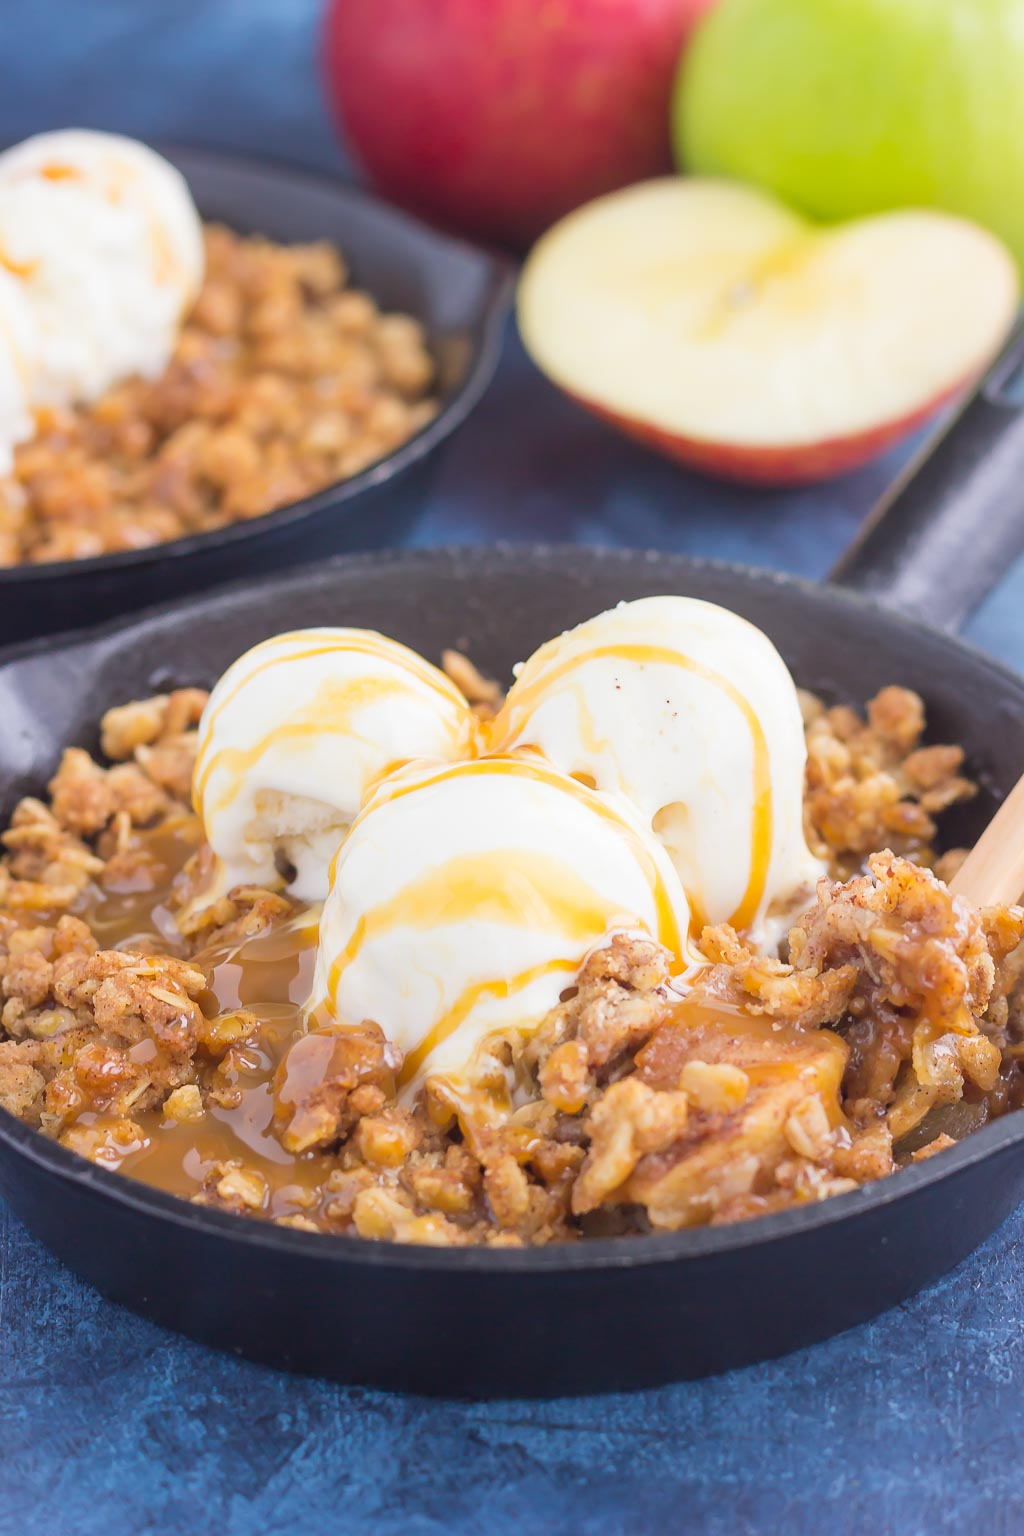 This Caramel Apple Crisp is a simple, cozy fall dessert that's ready in no time. Packed with tender apples, a rich caramel sauce, and a buttery,brown sugartopping, this dish makes the perfect sweet treat, especially when served with a big scoop of vanilla ice cream!